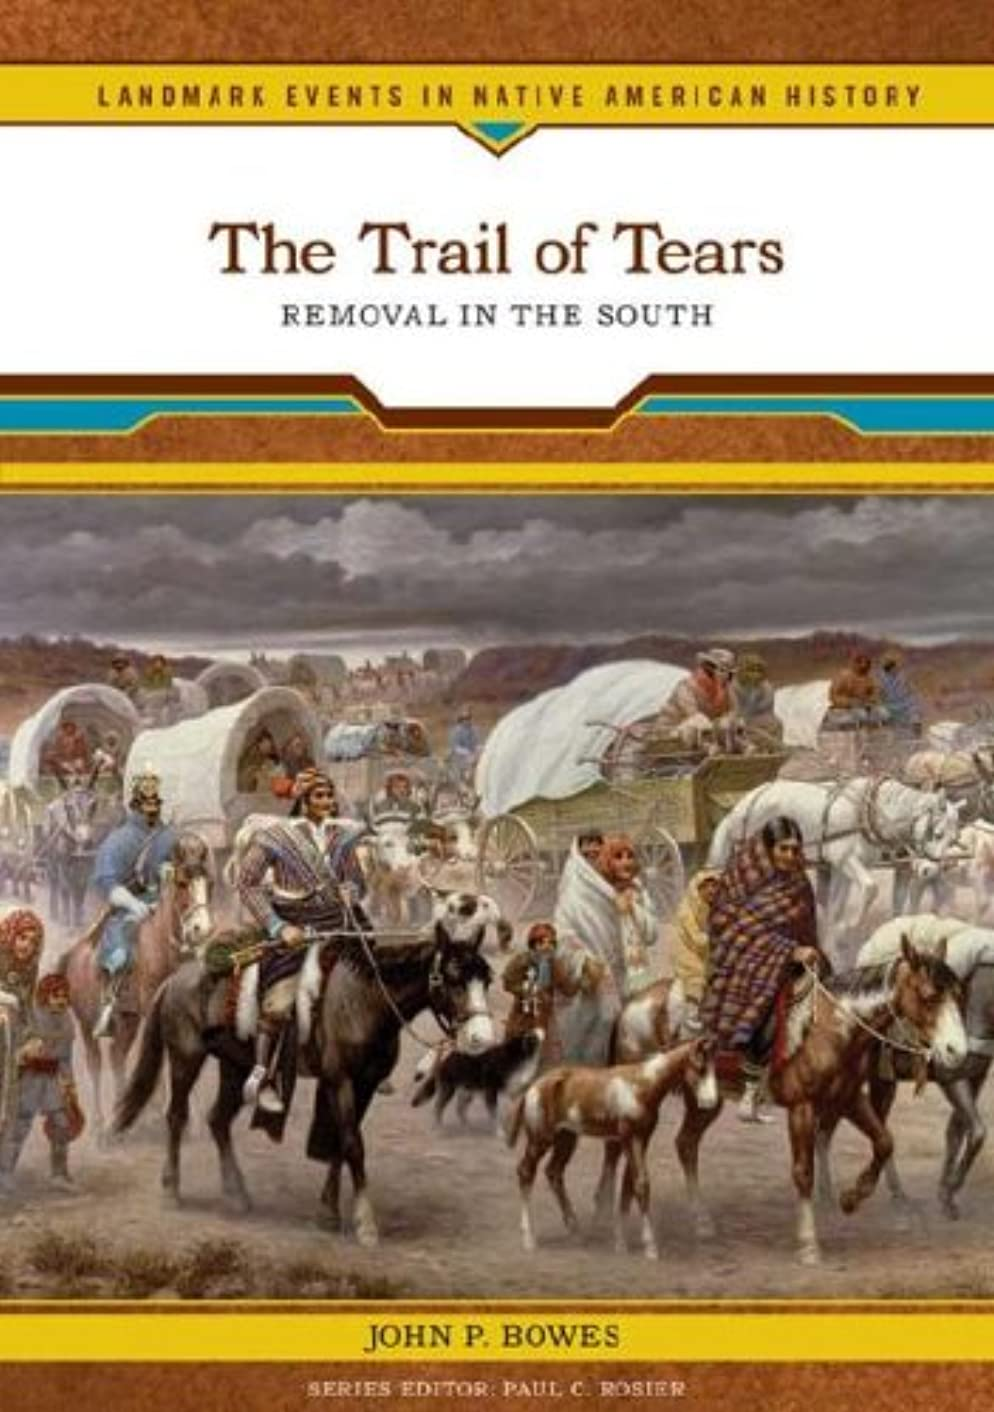 The Trail of Tears: Removal in the South (Landmark Events in Native American History)